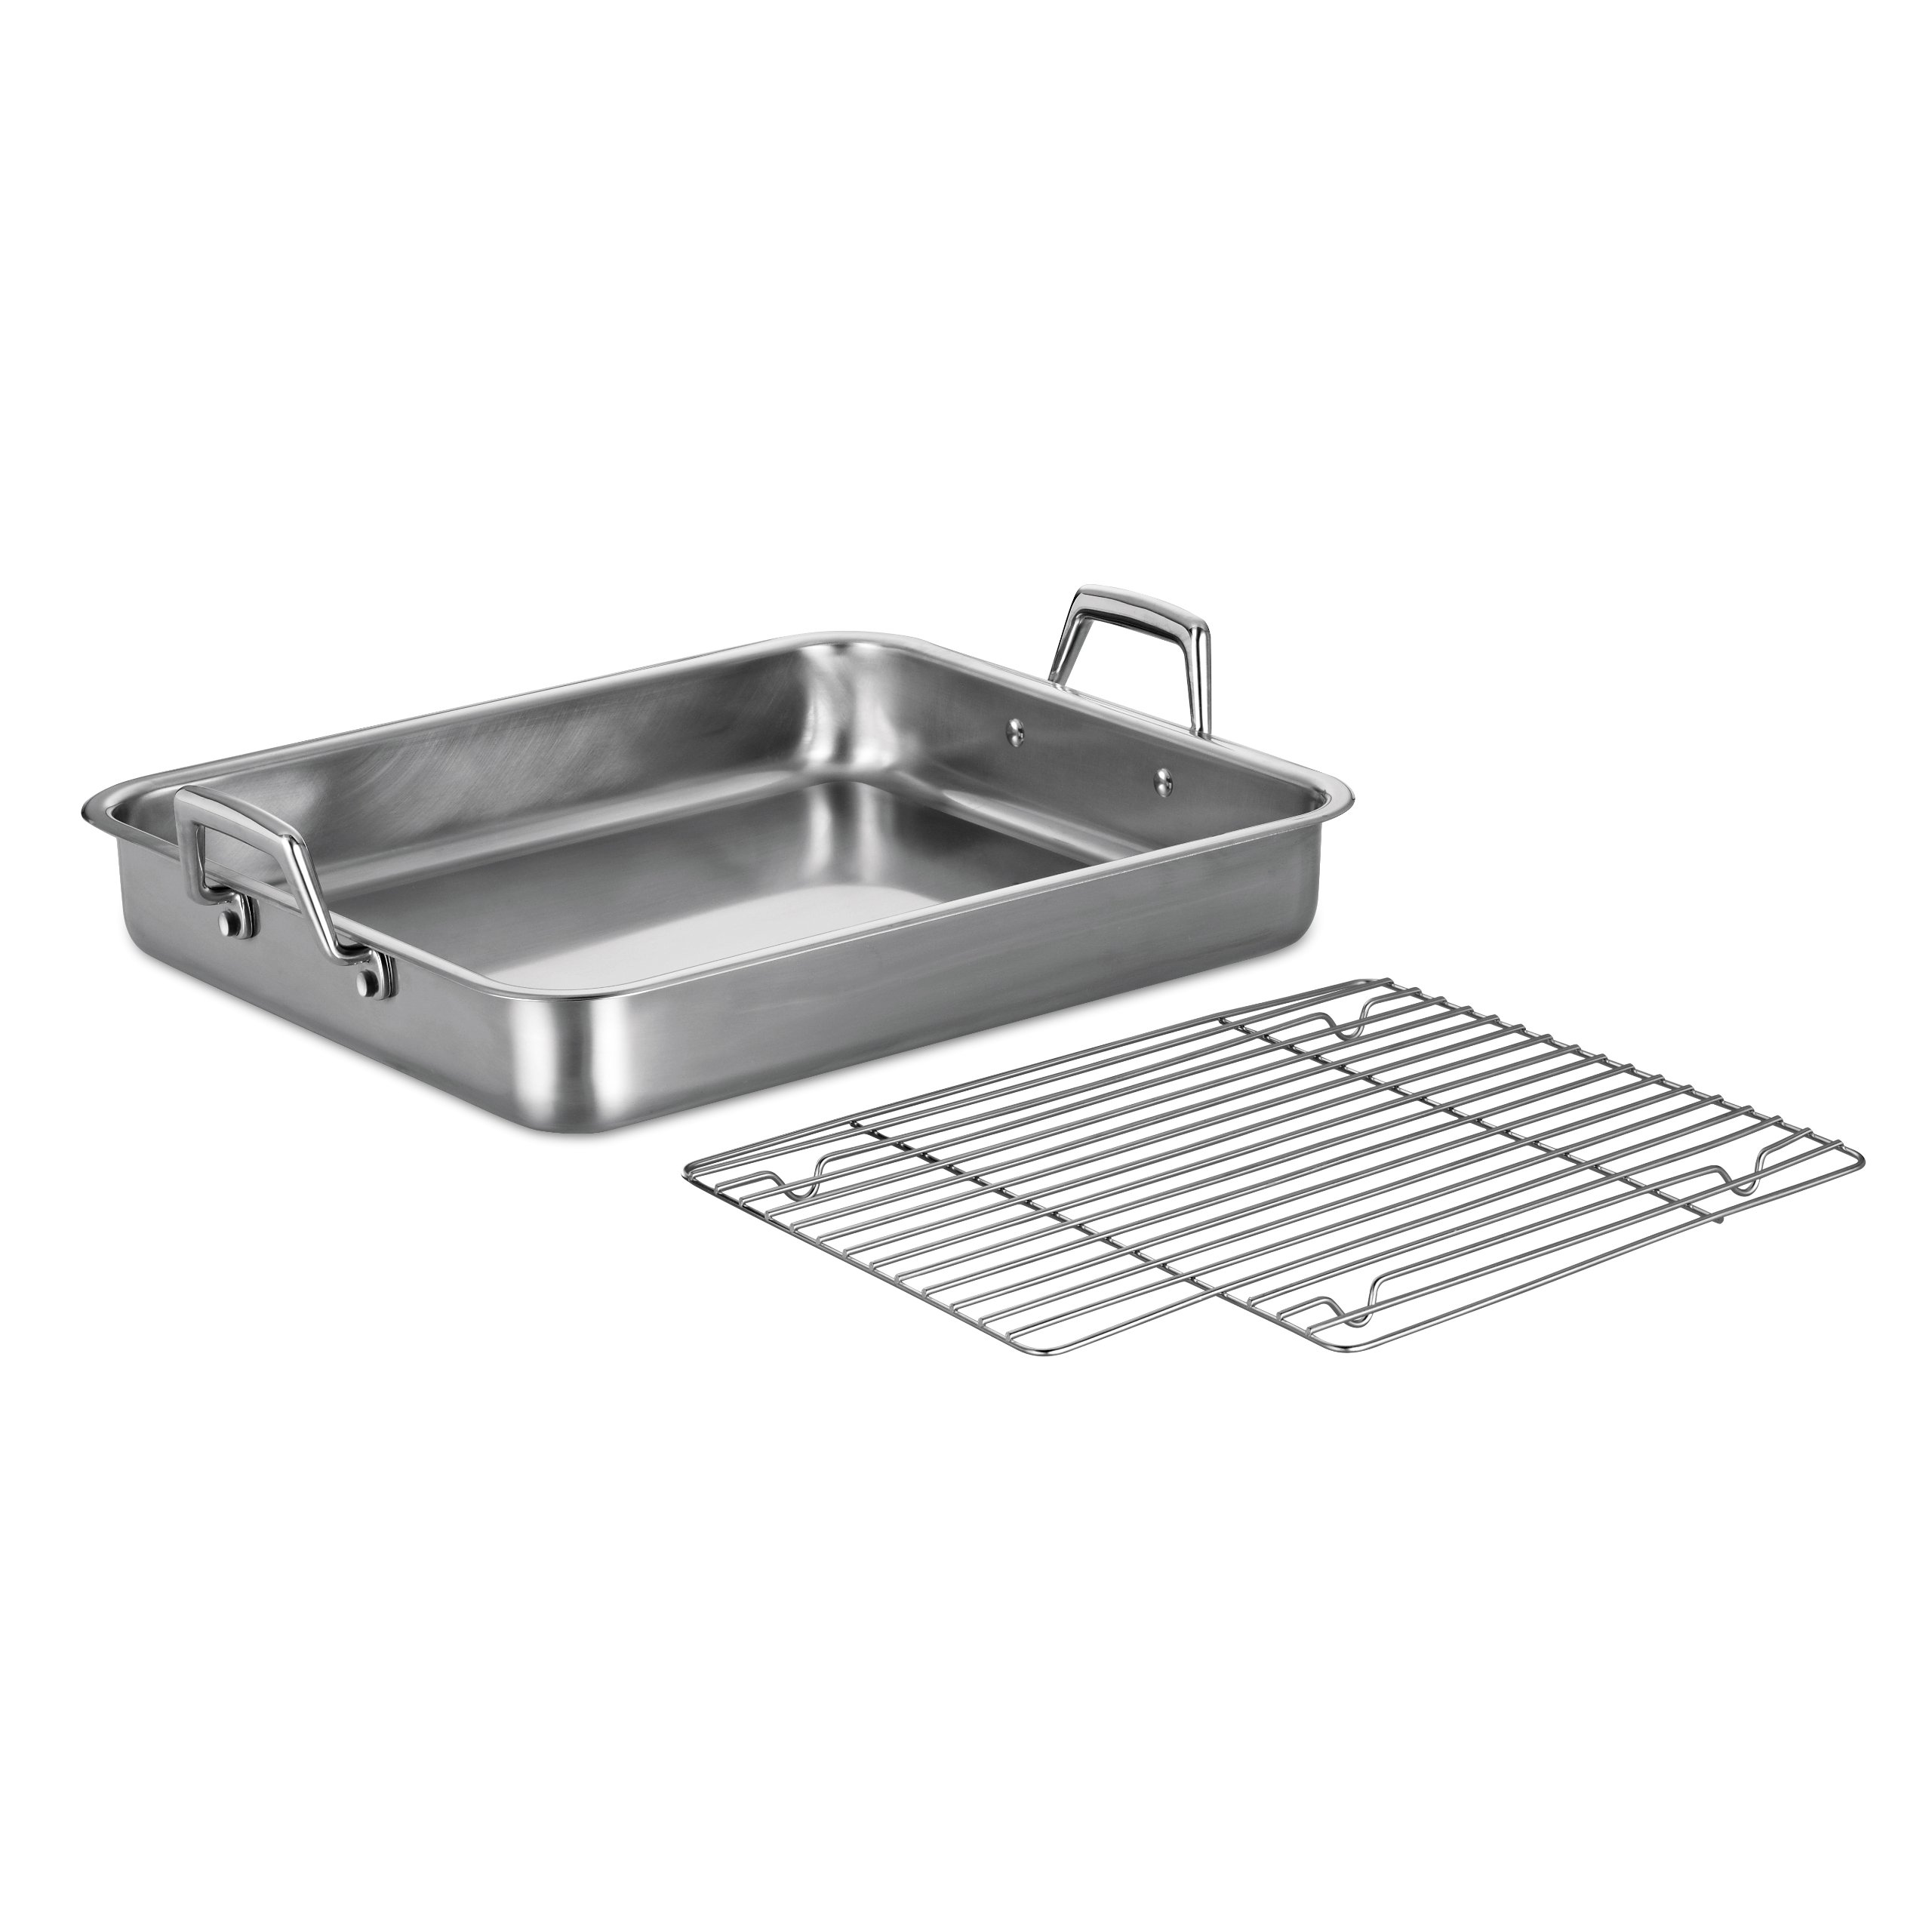 Tramontina 80203/005DS Gourmet Prima 16.5-Inch Rectangular Roasting Pan with Basting Grill, Large, Stainless Steel by Tramontina